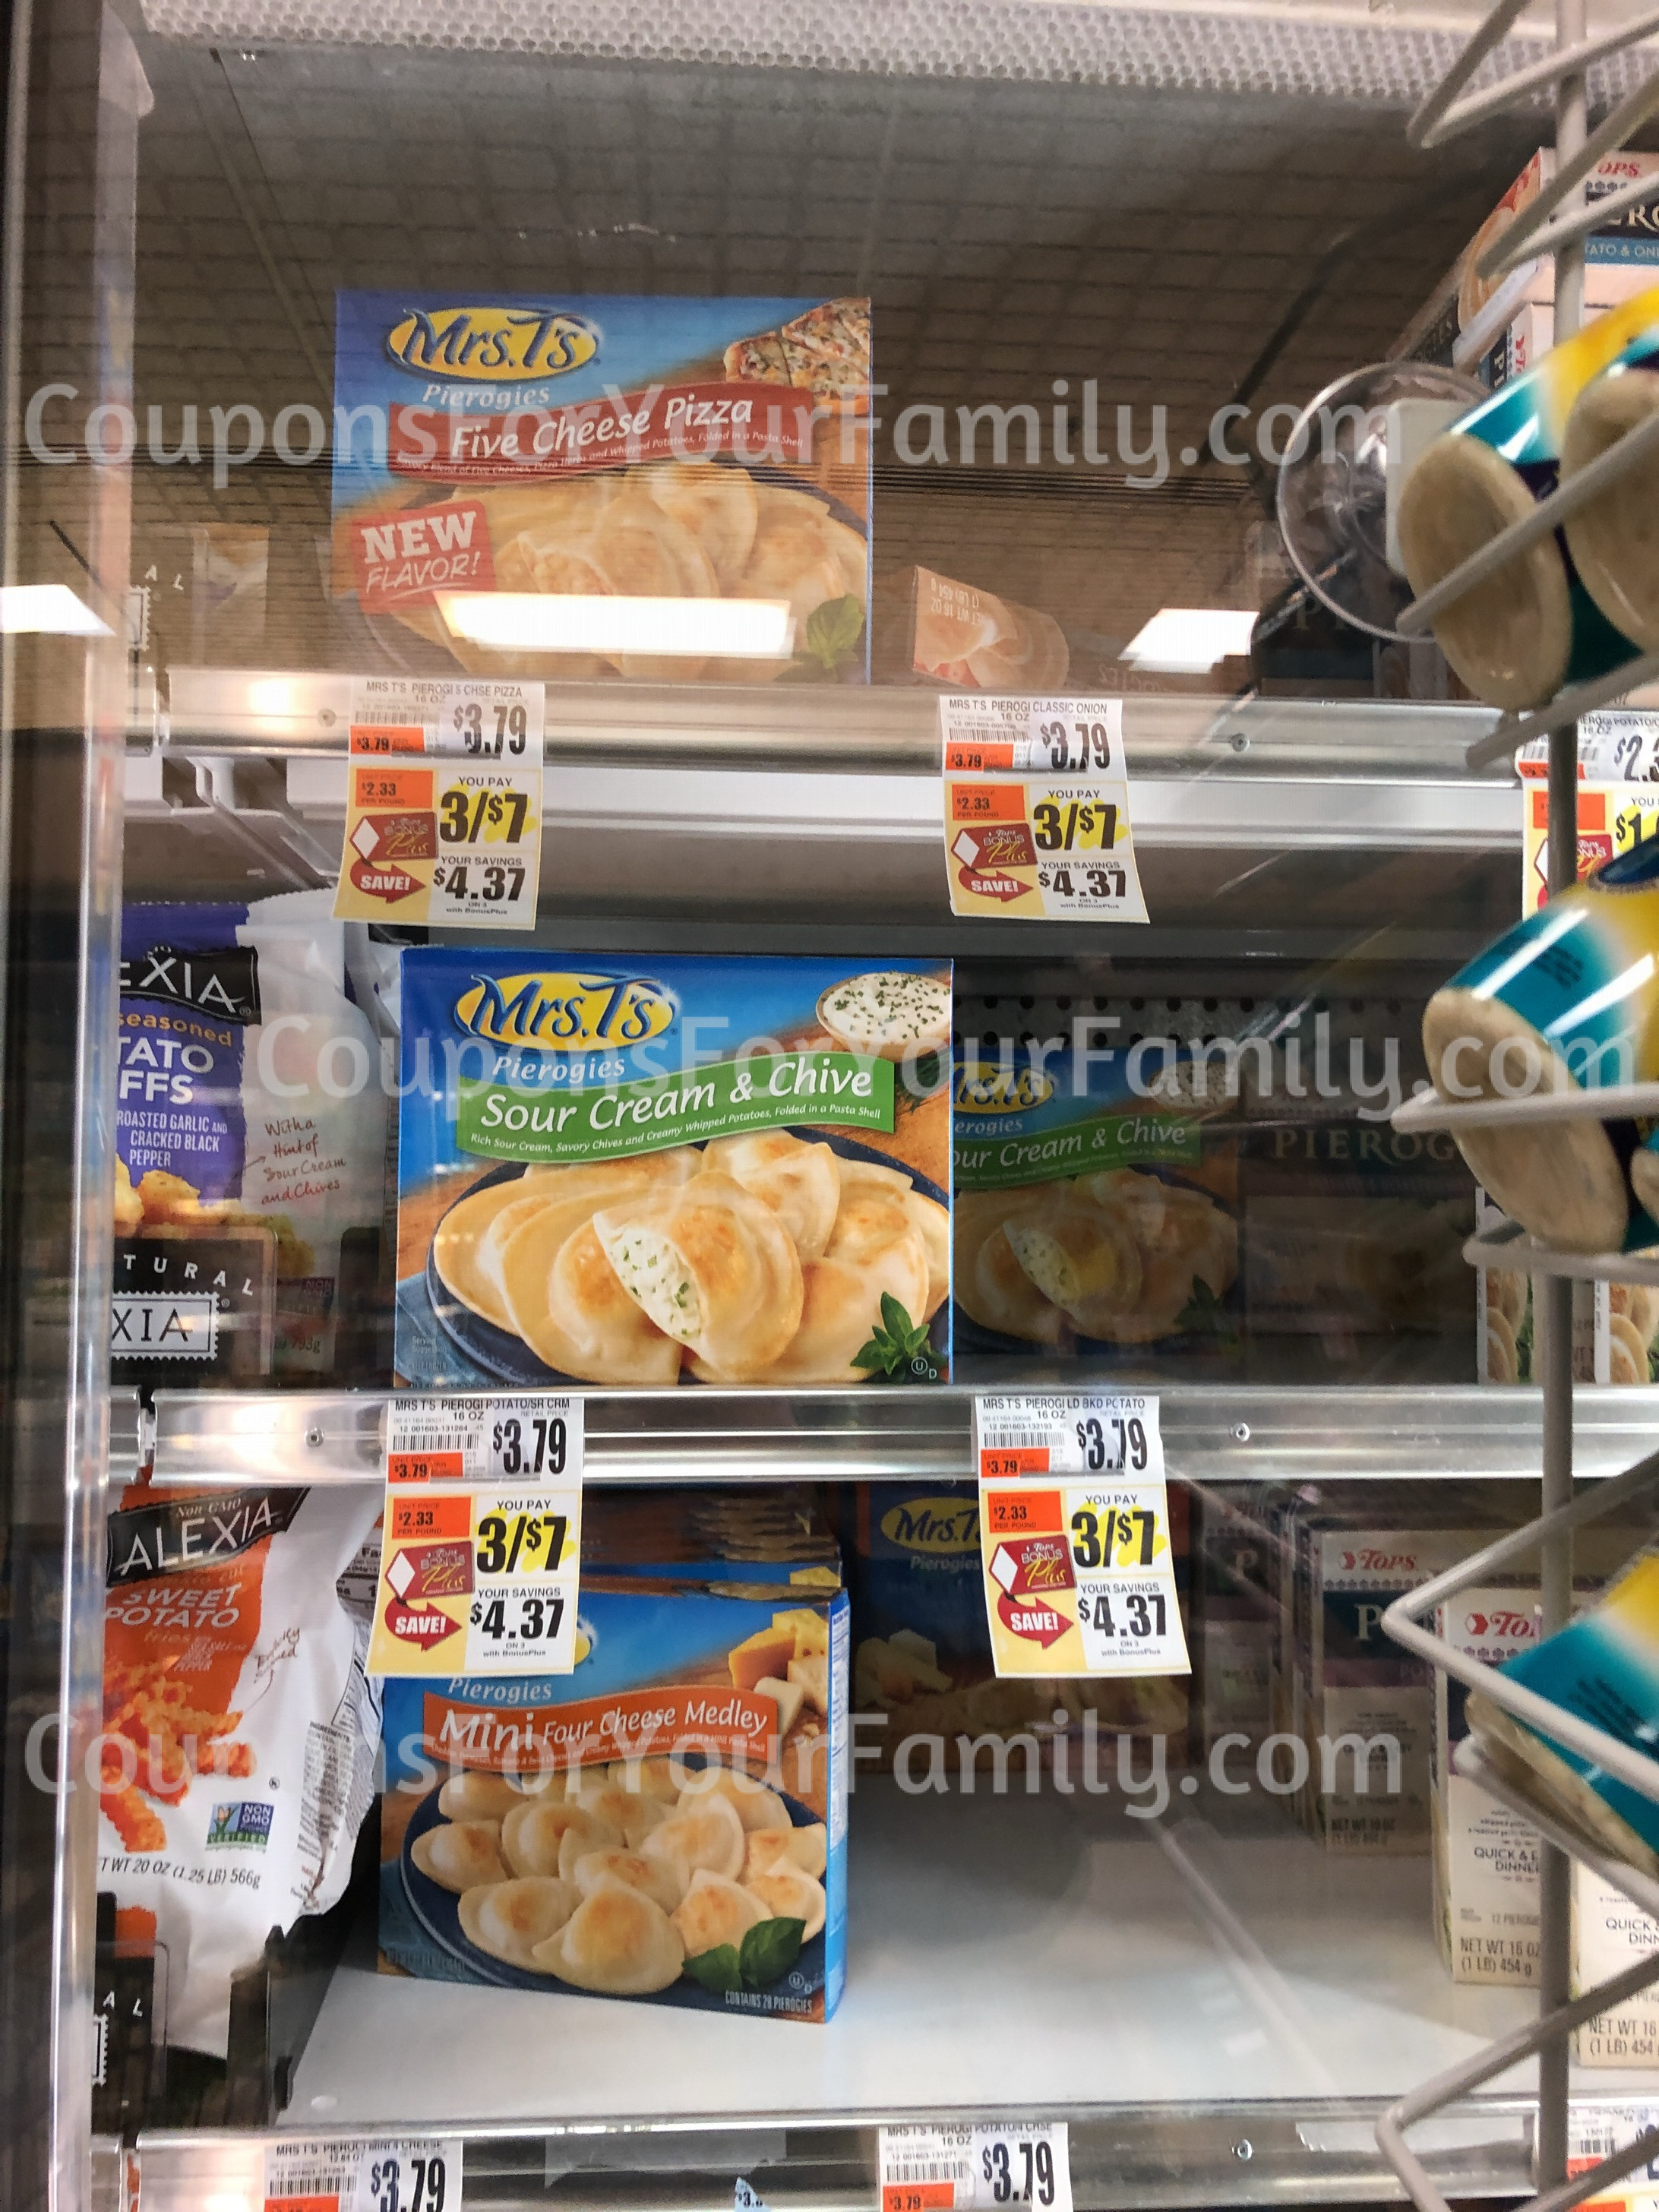 Print this NEW Mrs T's Pierogi's Coupon and get for $1.66 at Tops Markets!!